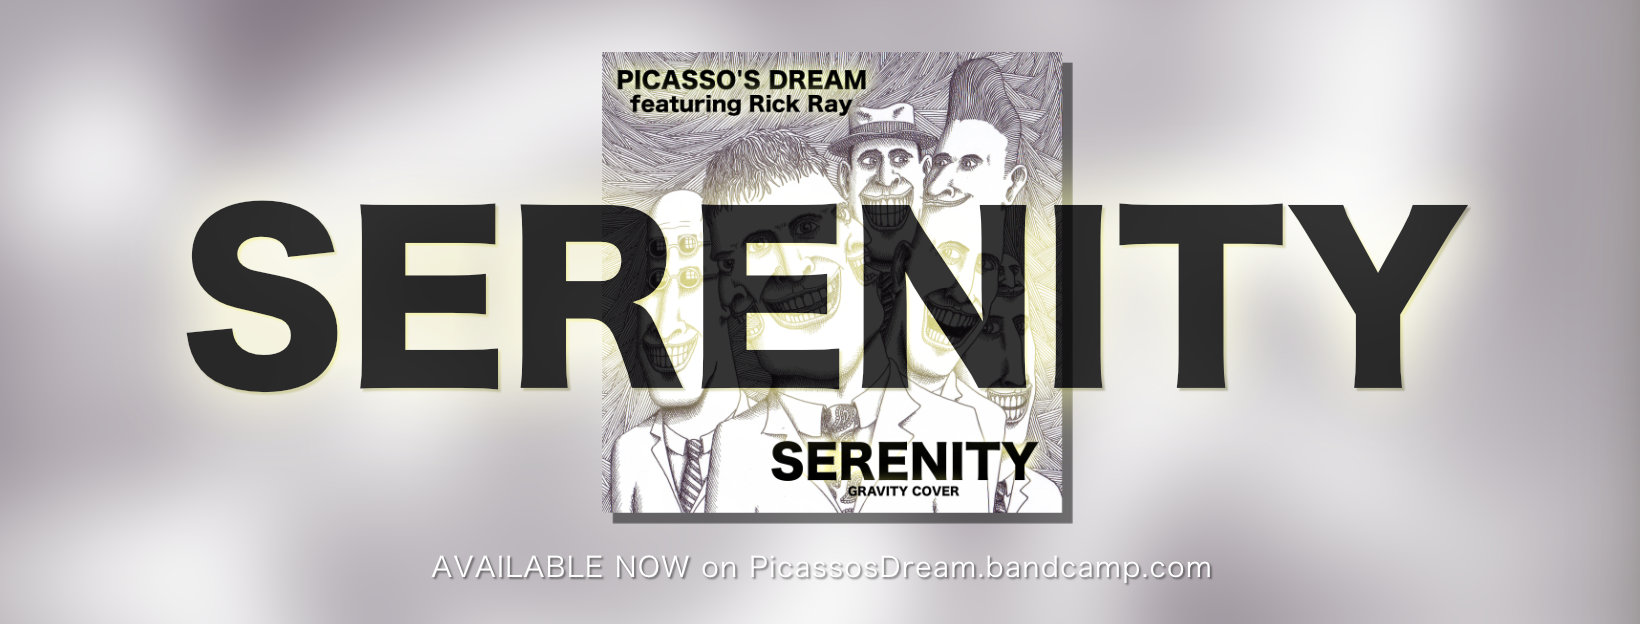 Serenity - Progressive Rock Single from Picasso